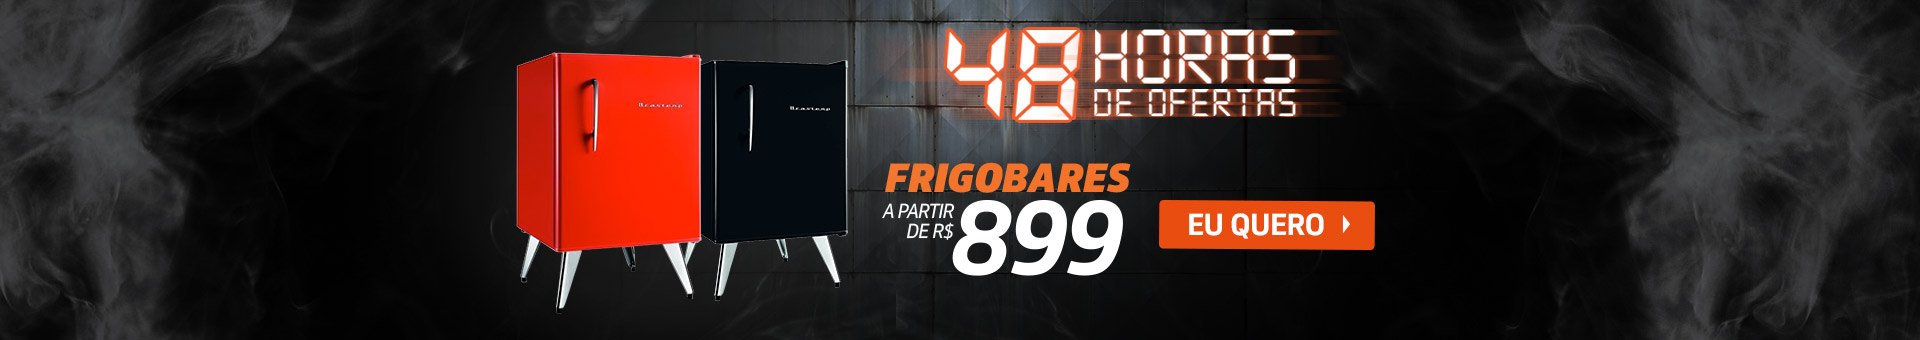 48 horas cooktops